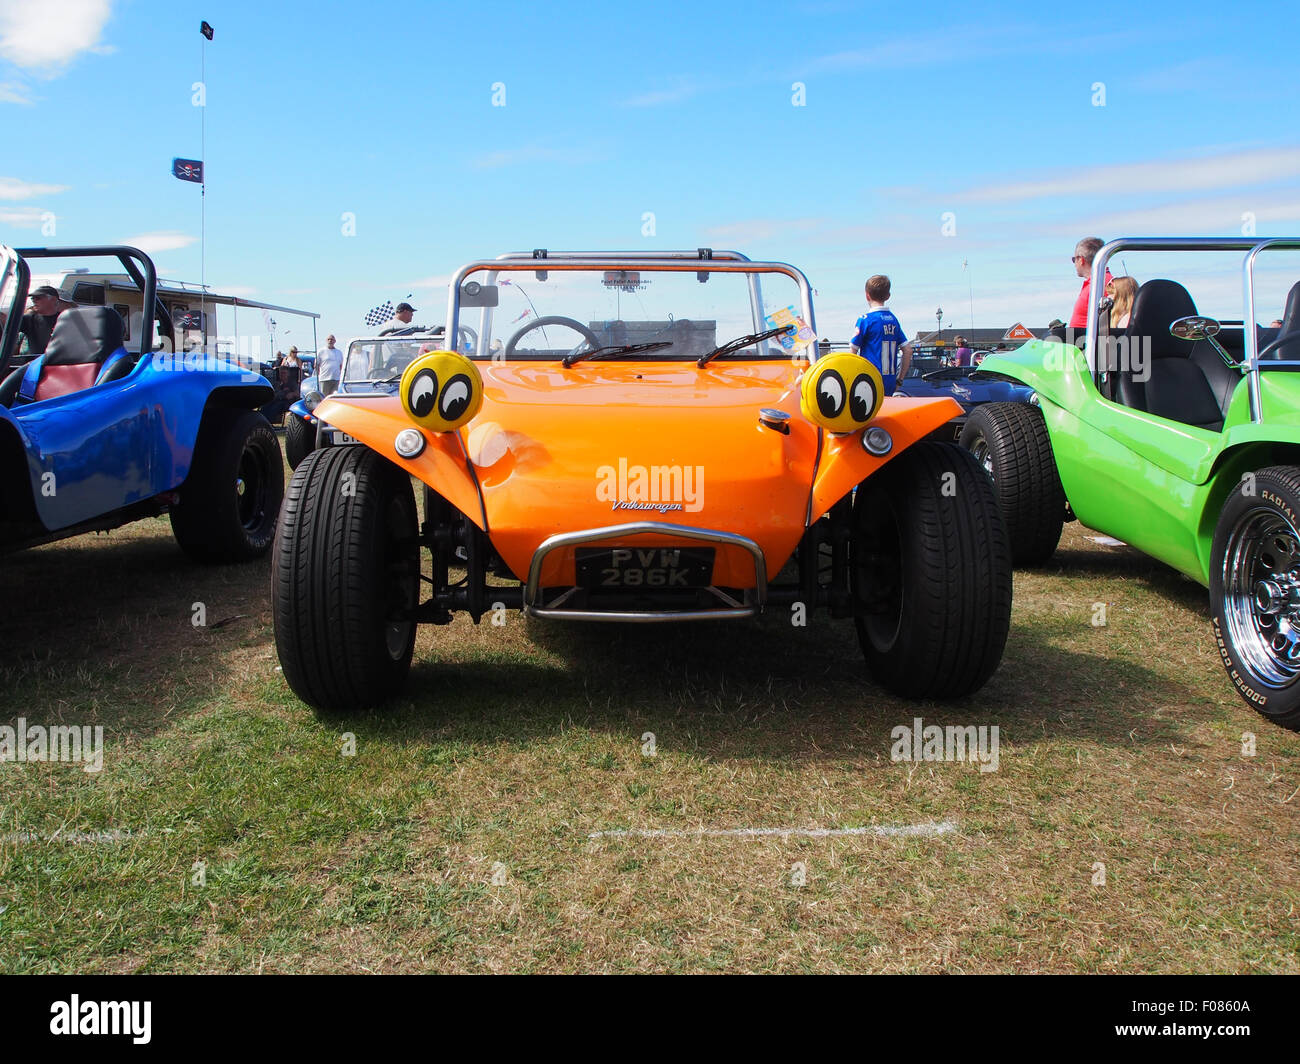 370bc68162ce A customised road worthy beach buggy on display at a vehicle rally - Stock  Image